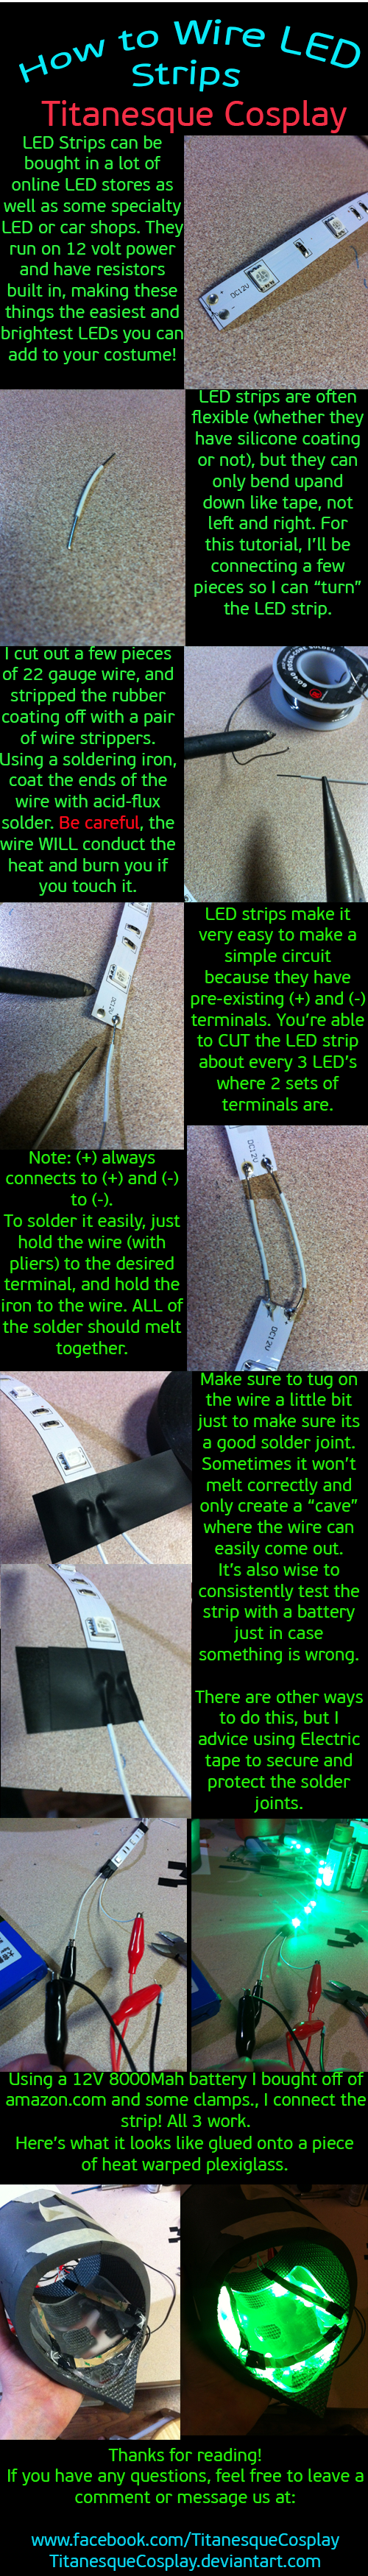 How to wire LED Strips by TitanesqueCosplay.deviantart.com on ...